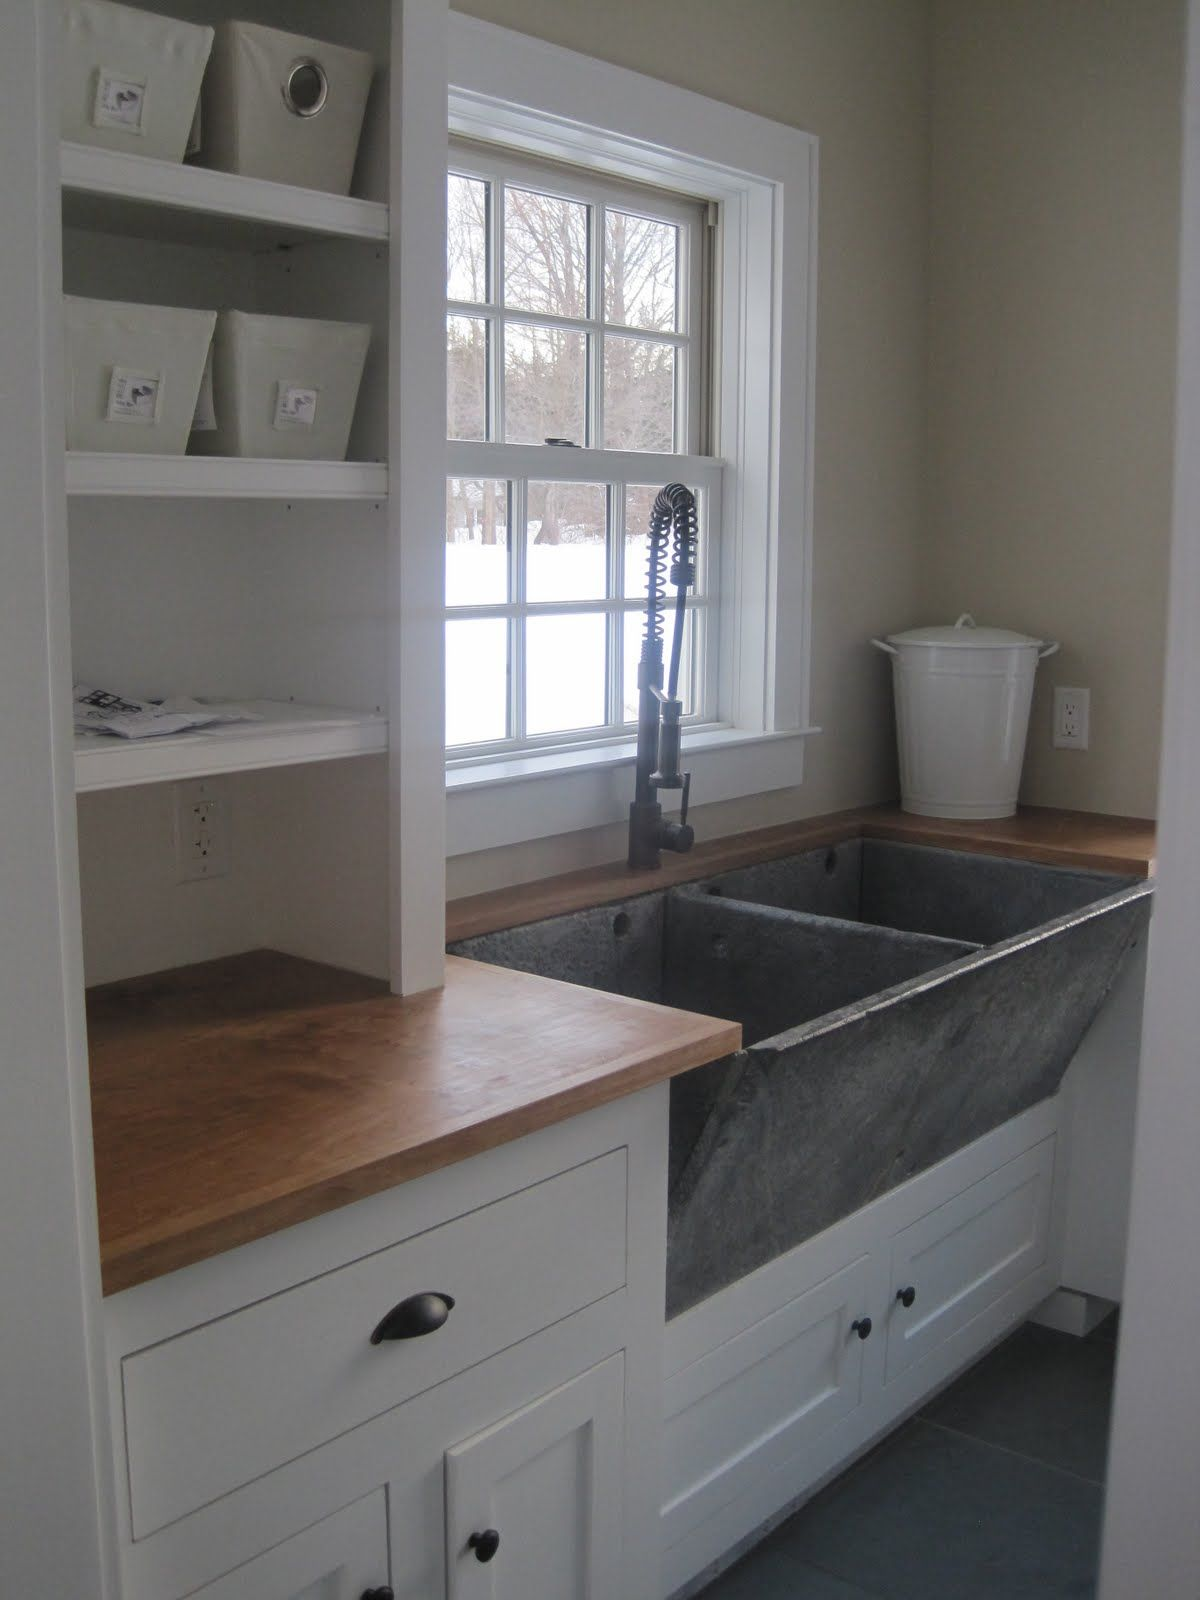 I love the old concrete or stone utility sink. It could be